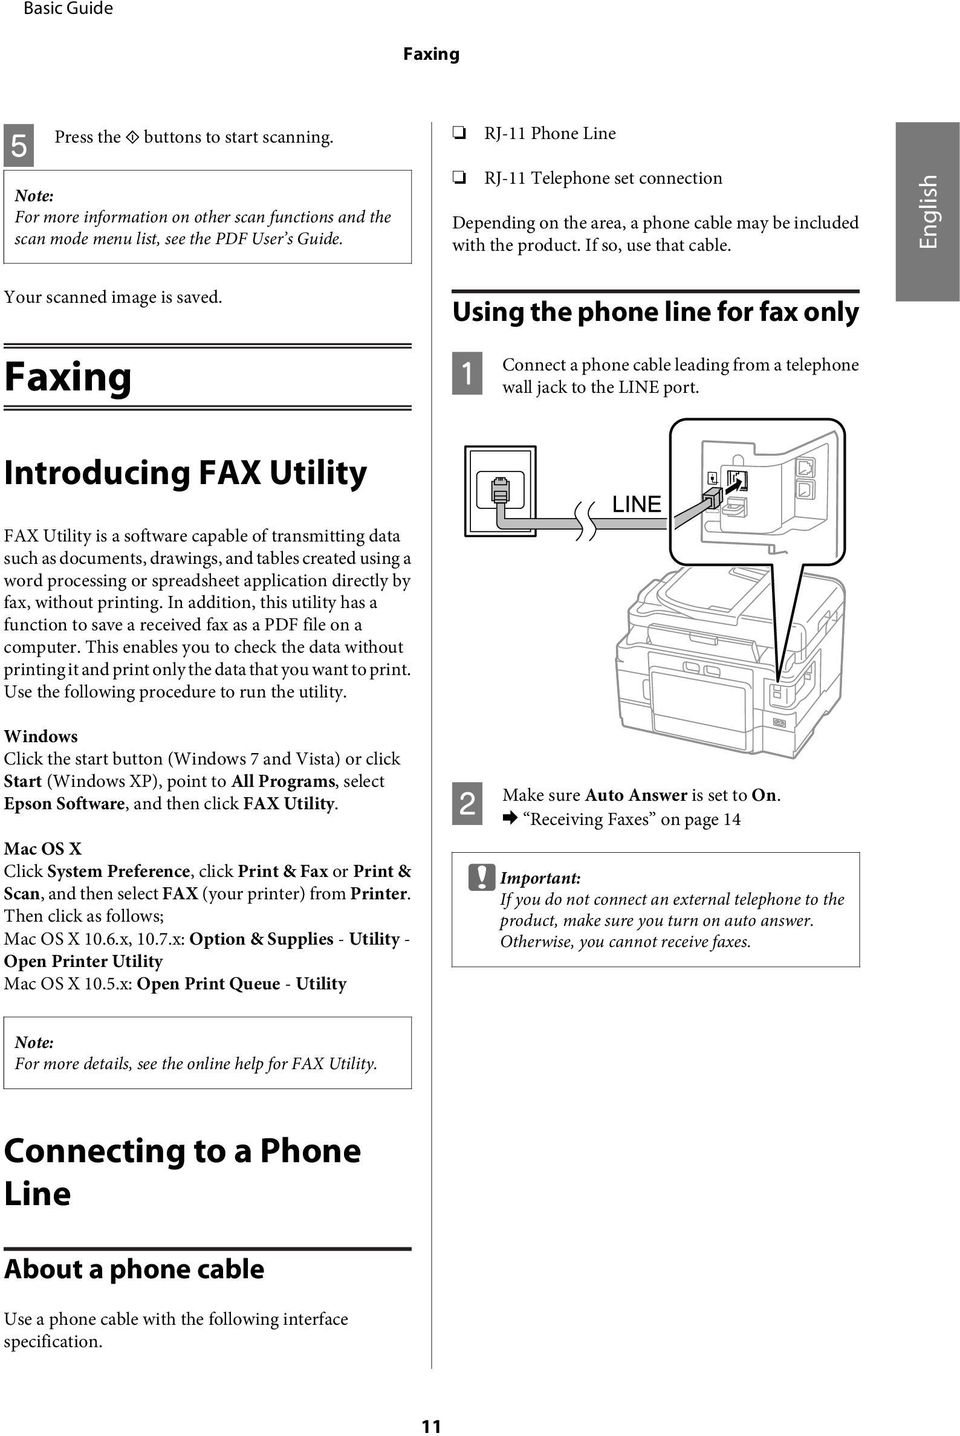 Faxing Using the phone line for fax only onnect a phone cable leading from a telephone wall jack to the LINE port.